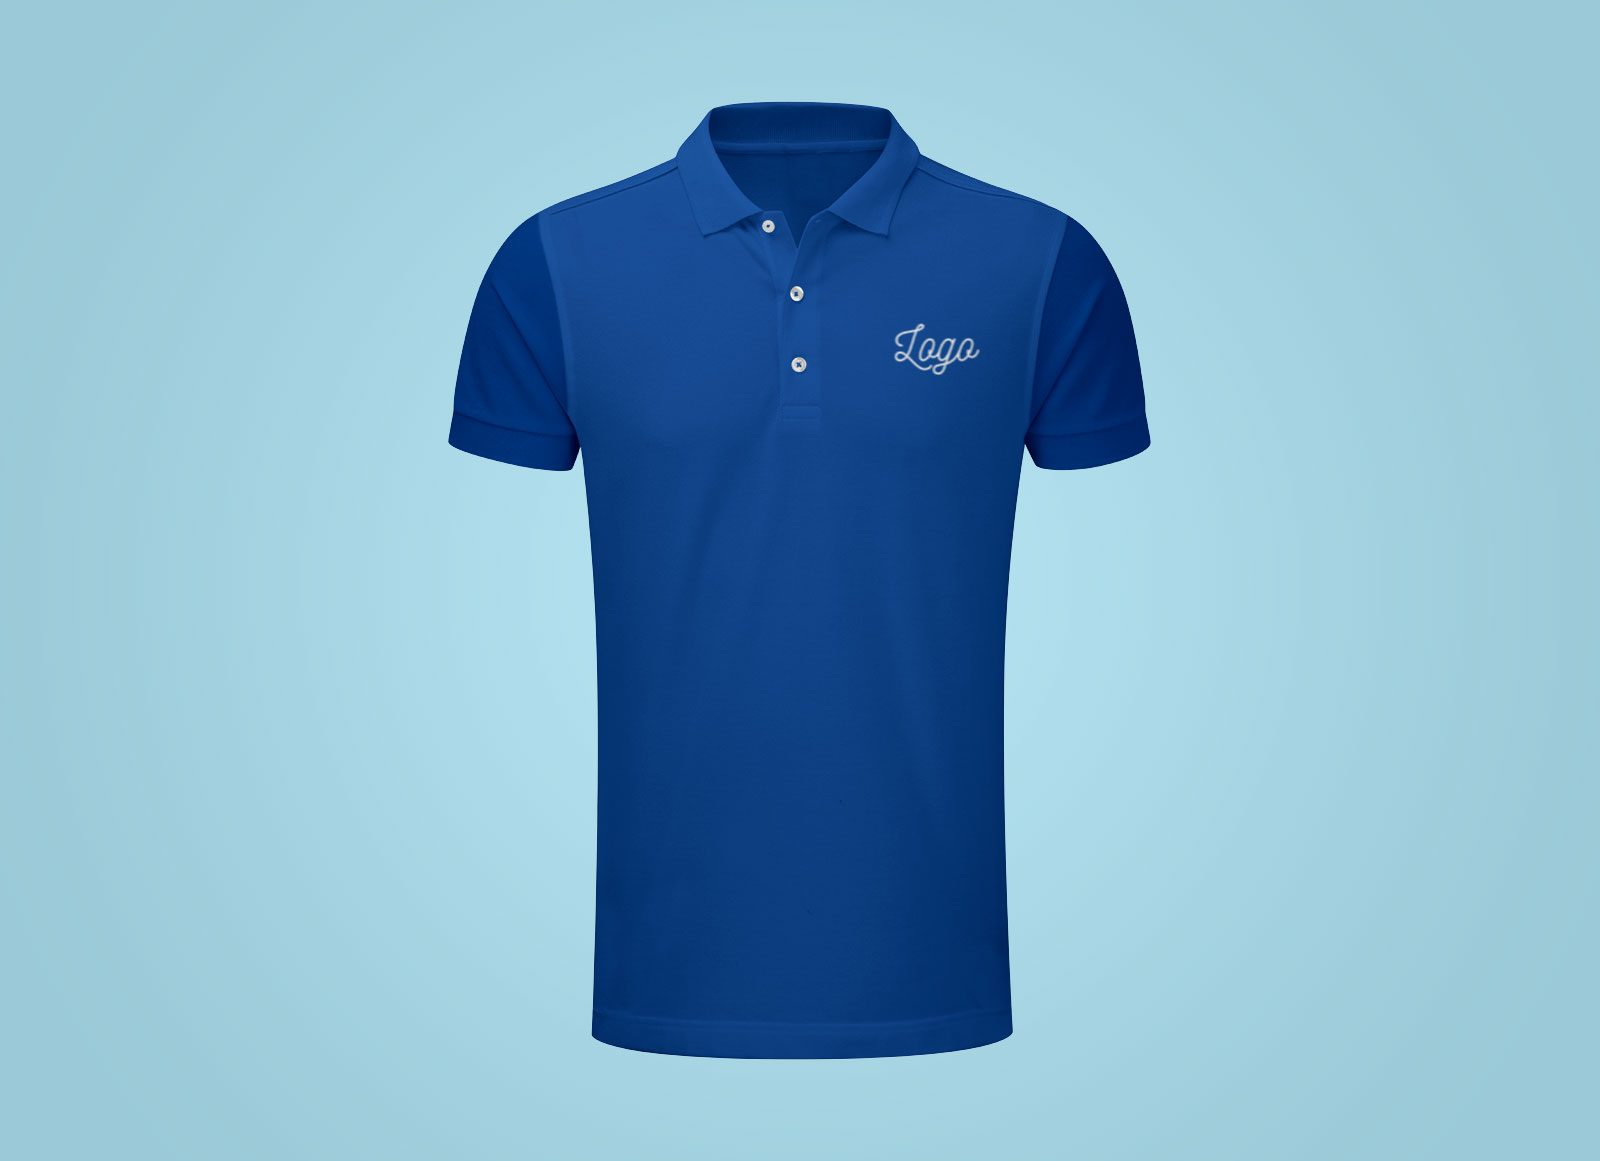 Free Fully Customizable Polo T-Shirt Mockup PSD